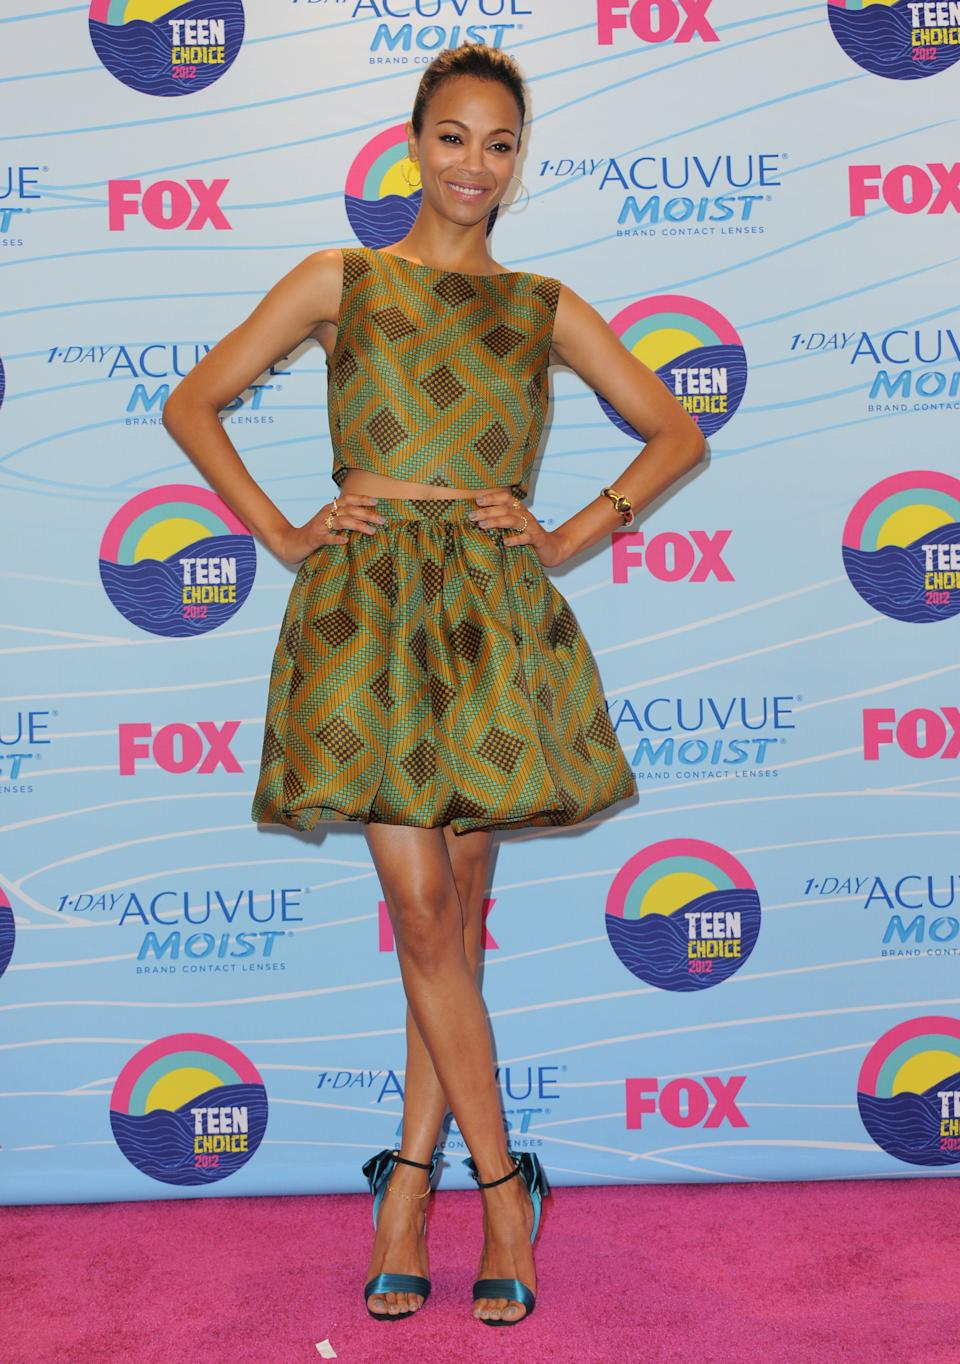 Zoe Saldana poses backstage at the Teen Choice Awards on Sunday, July 22, 2012, in Universal City, Calif. (Photo by Jordan Strauss/Invision/AP)